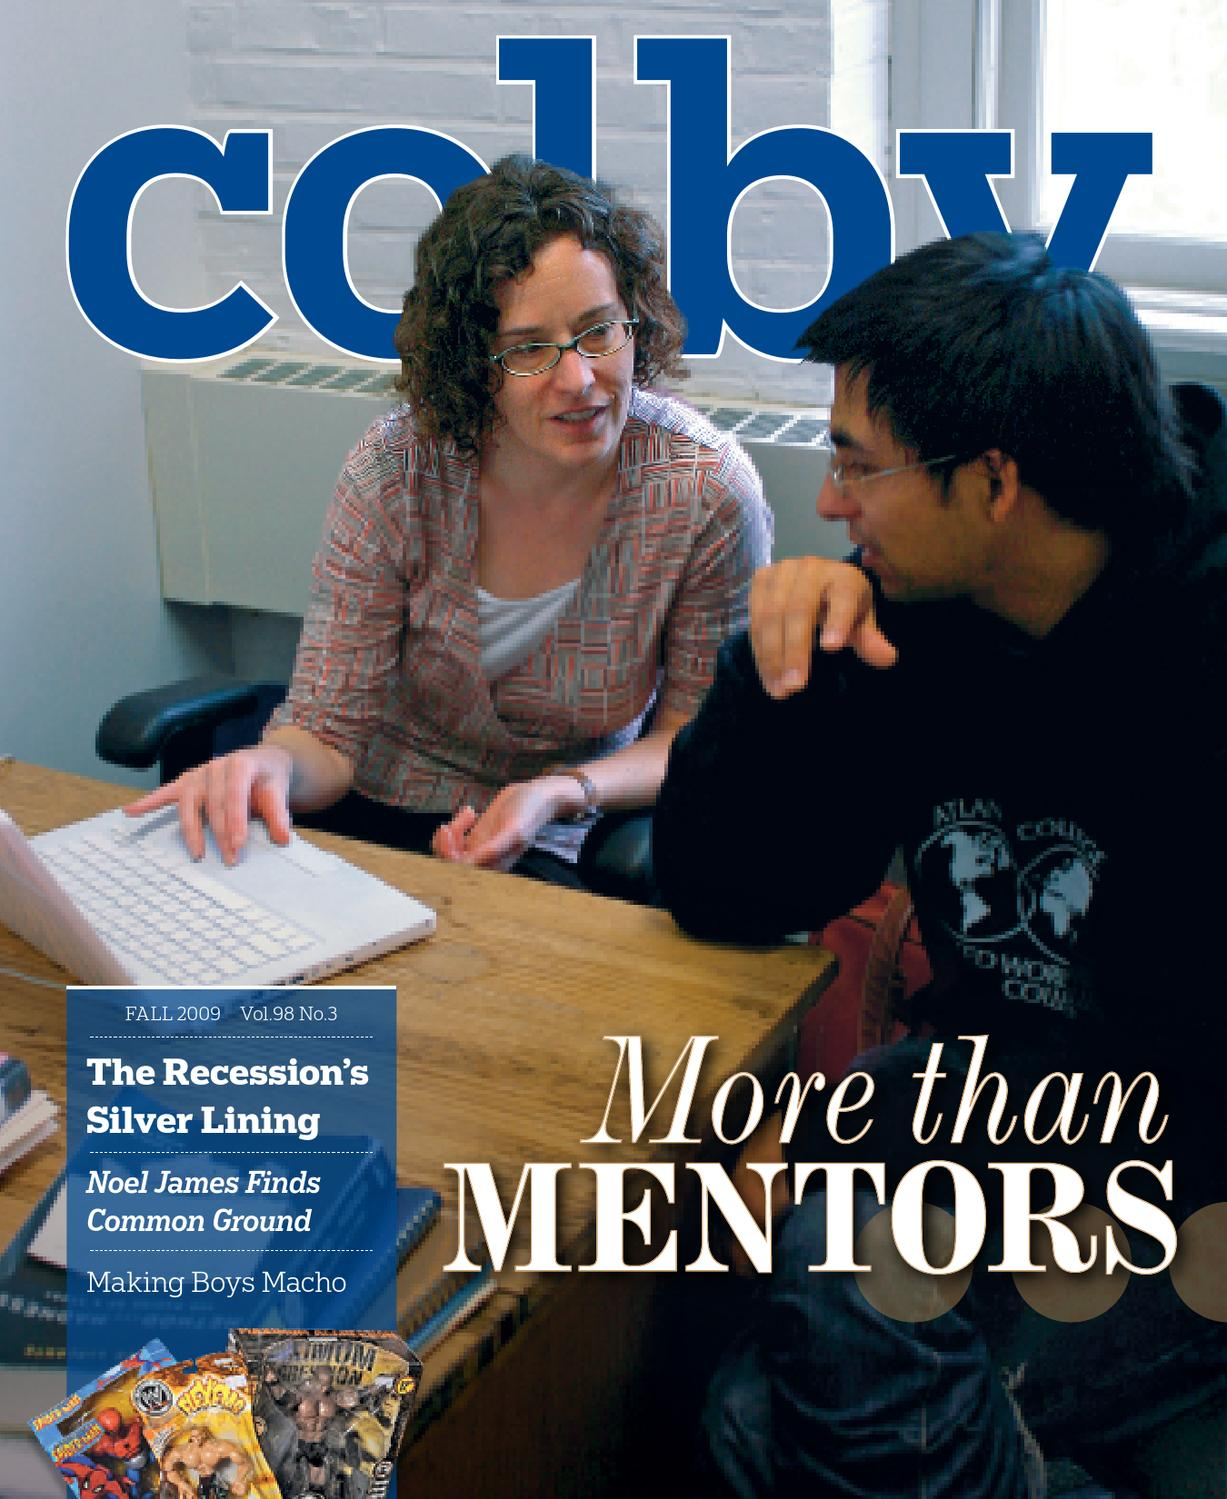 Colby Magazine vol  98, no  3 by Colby College Libraries - issuu